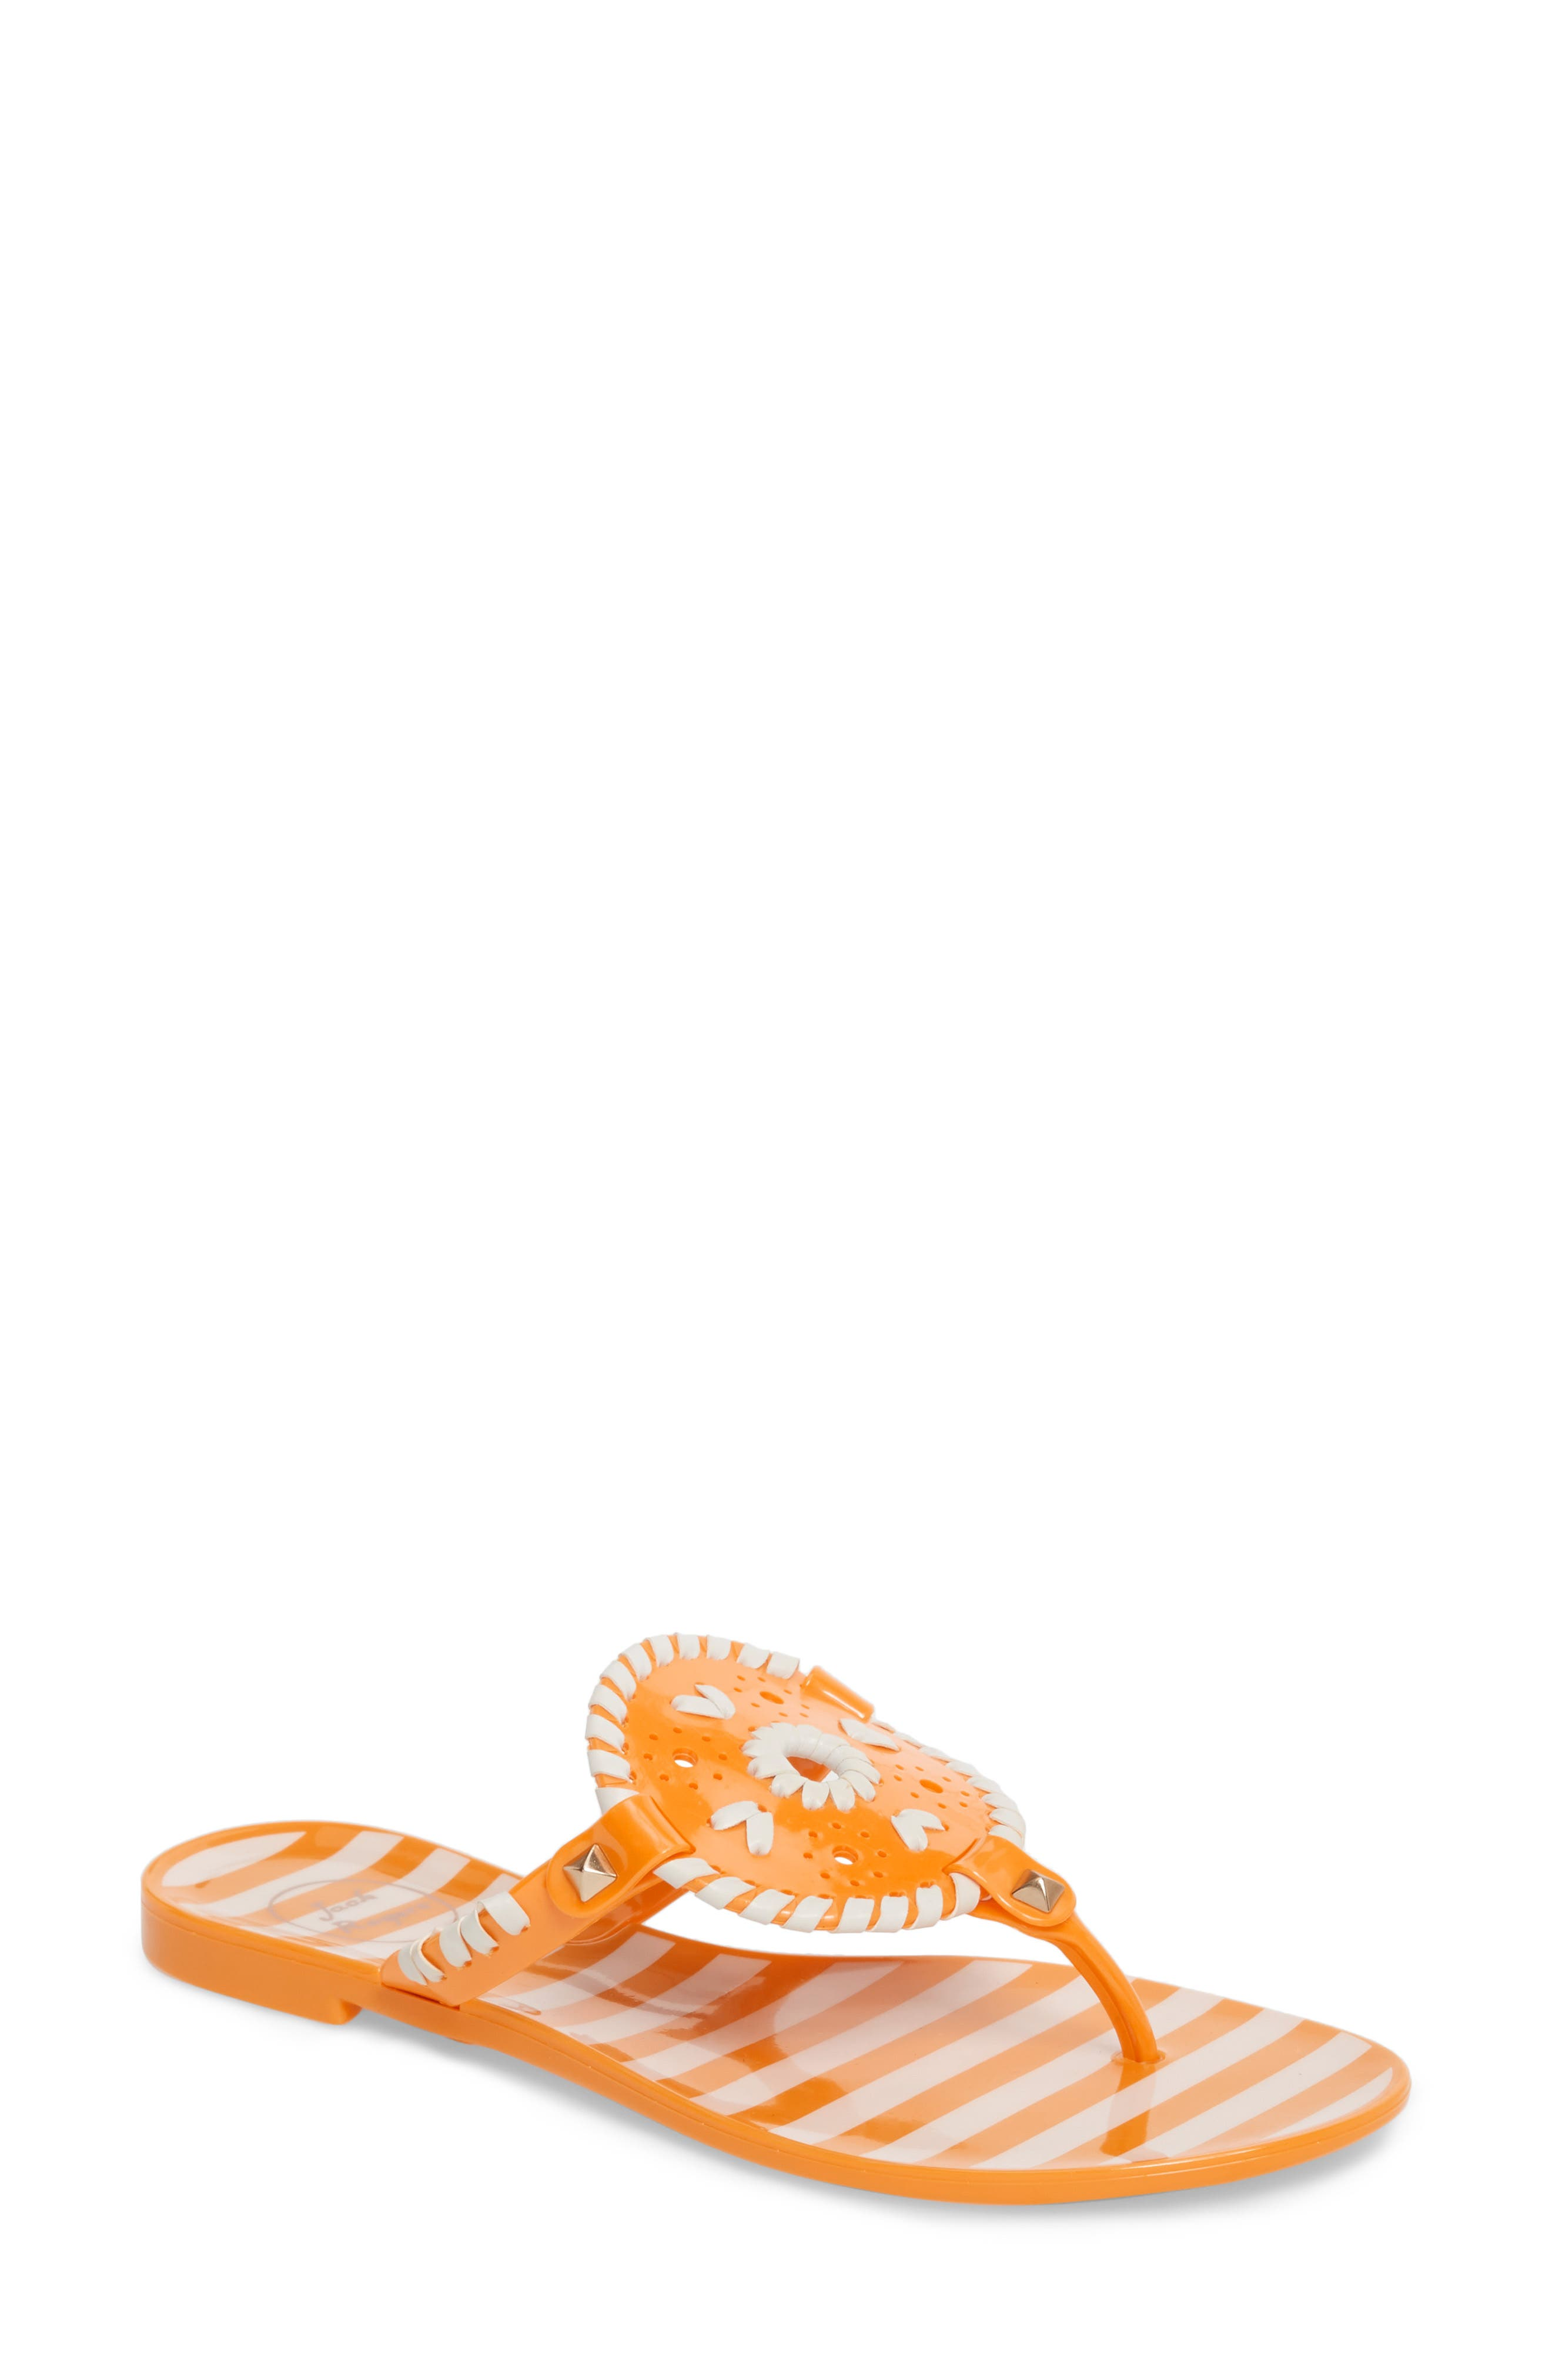 'Georgica' Jelly Flip Flop,                             Main thumbnail 1, color,                             Tangerine/ White Fabric